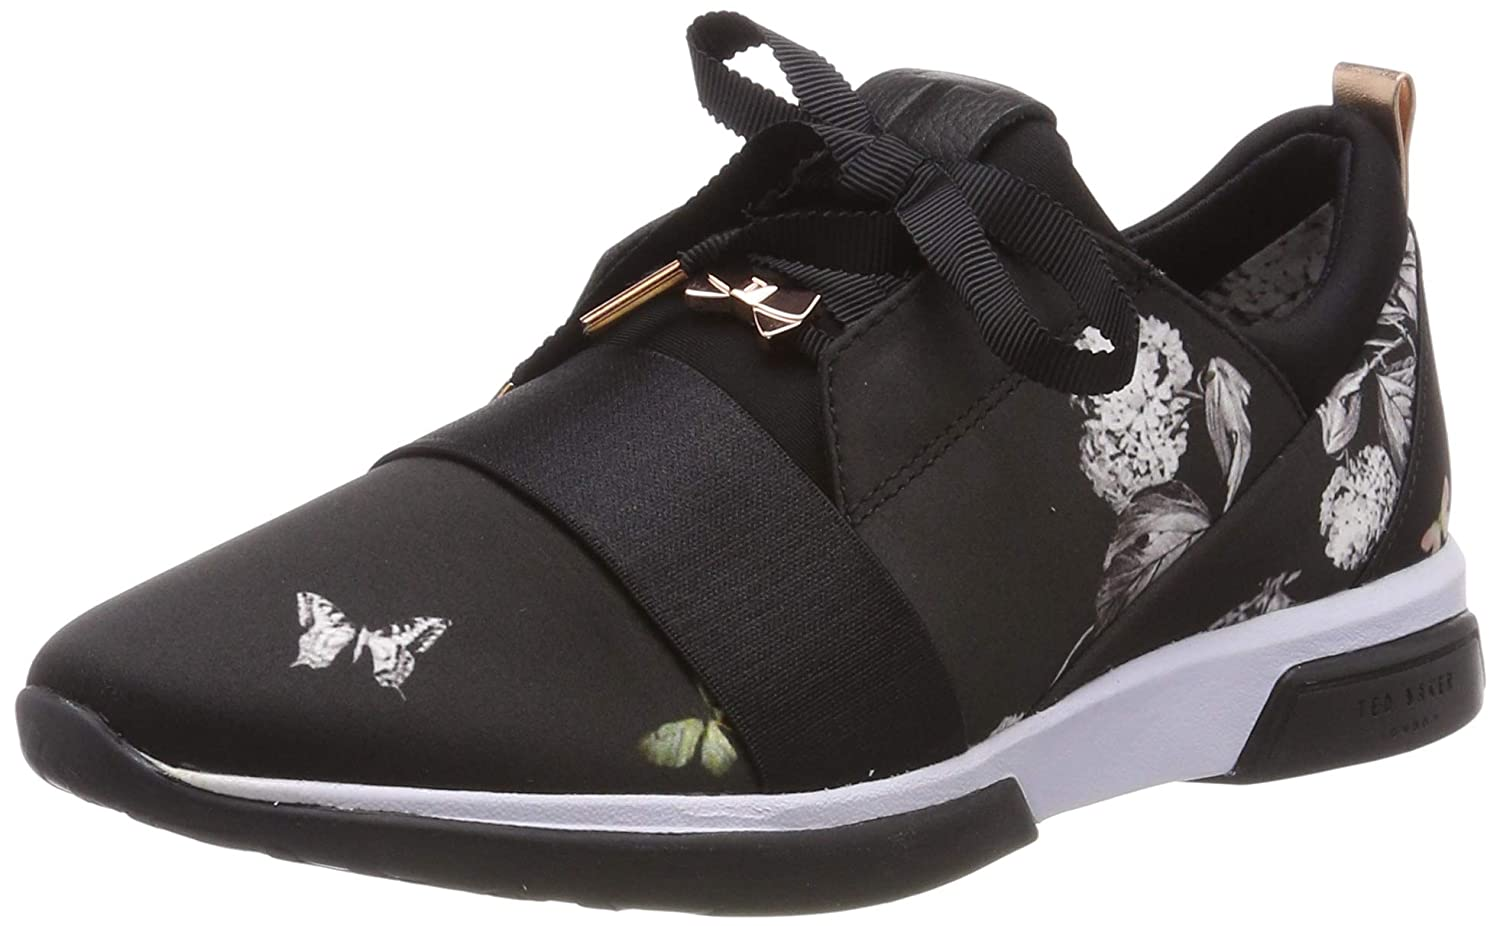 07219968f0963 Ted Baker Cepa, Women's Sneakers